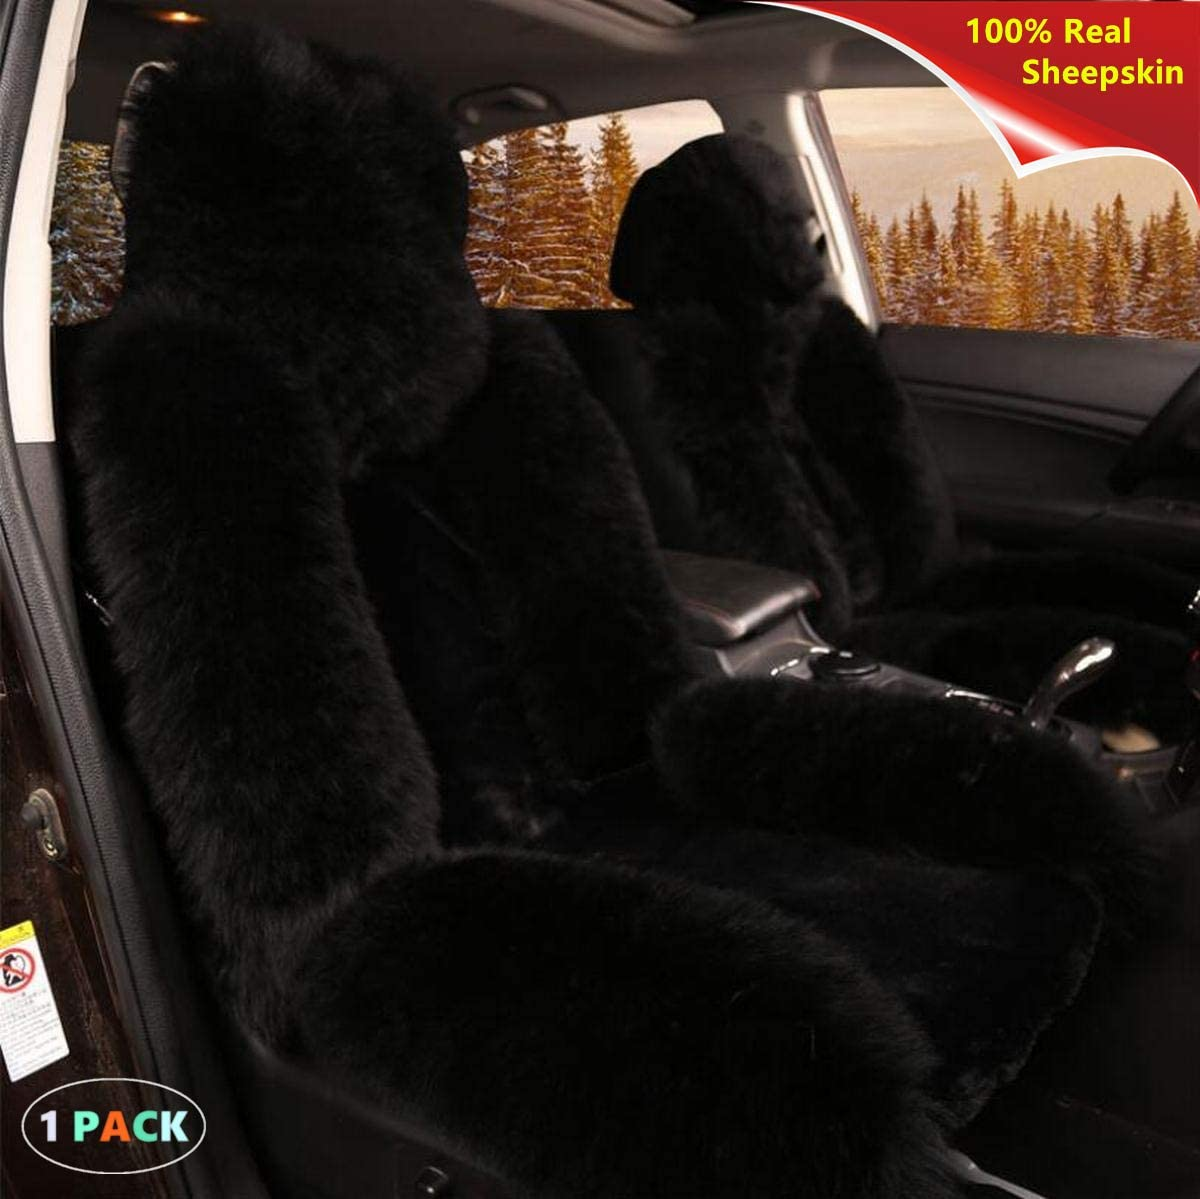 Soft Luxury Heavy Duty Sisha Natural Australian Sheepskin Wool Car Seat Cover for Front Seat SUV Seats Wine Truck Fluffy Winter Warm Seat Cushion Cover Fits Most Car